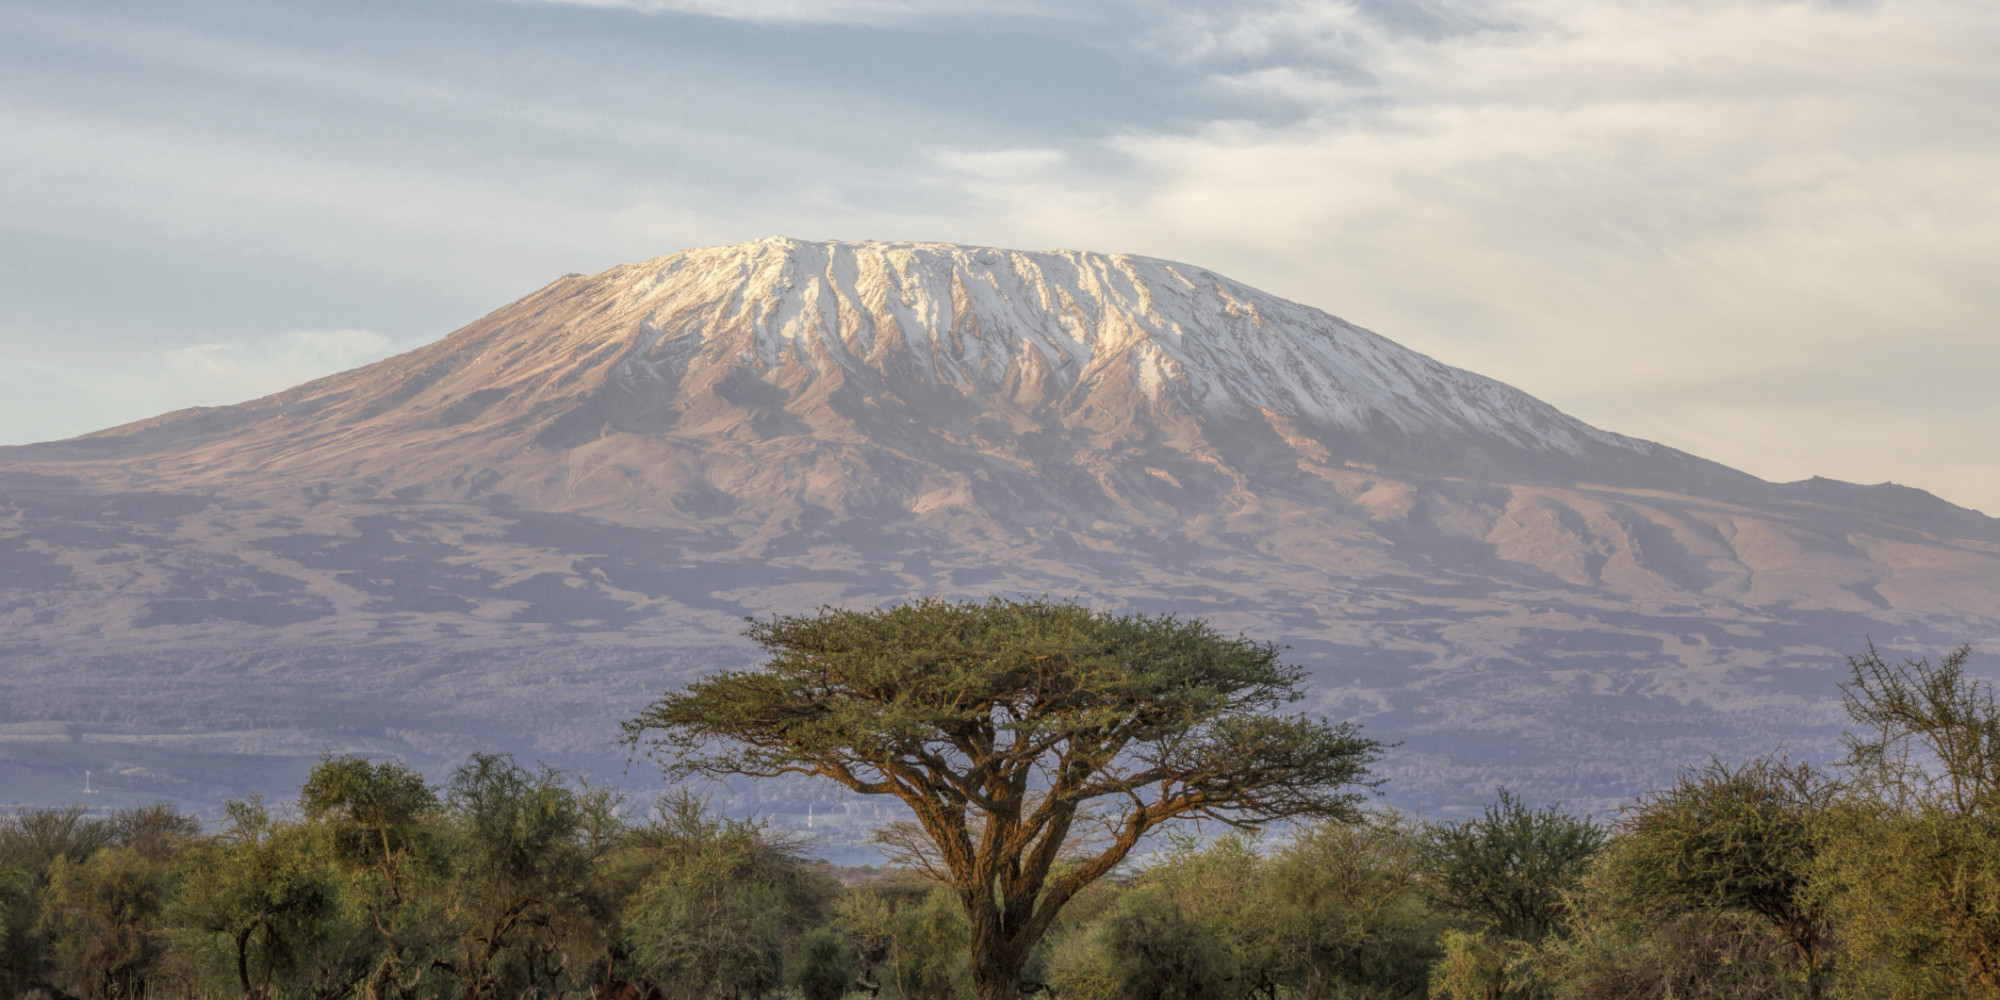 Climbing Kilimanjaro 10 Things I Would Do Differently